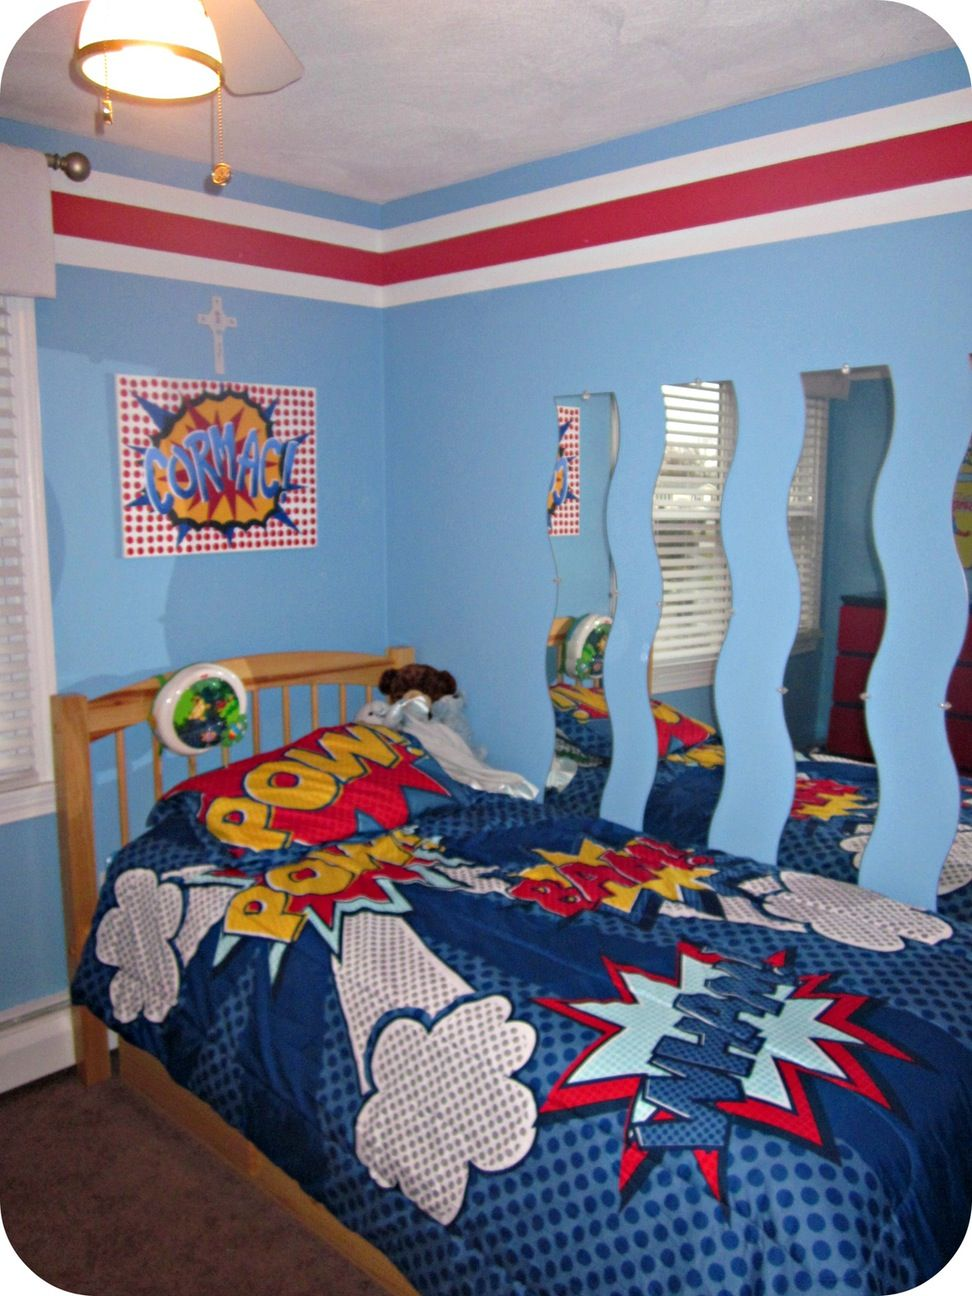 Baby Boy Room Design Pictures: Baby-boy-bedroom-ideas-5-year-old-pictures-home-office